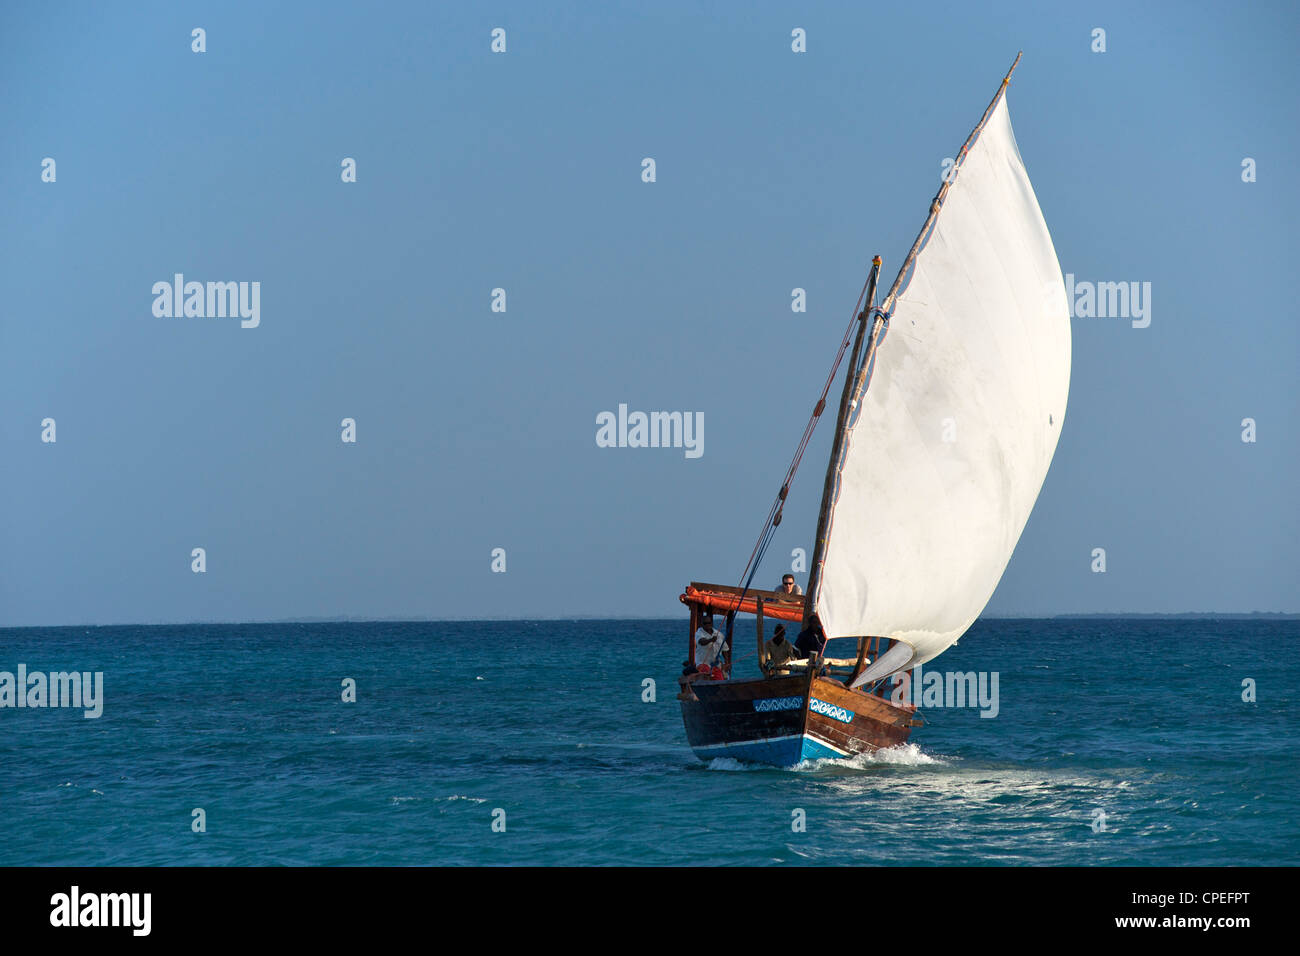 Dhow sailing in the Quirimbas archipelago off the coast of northern Mozambique. - Stock Image